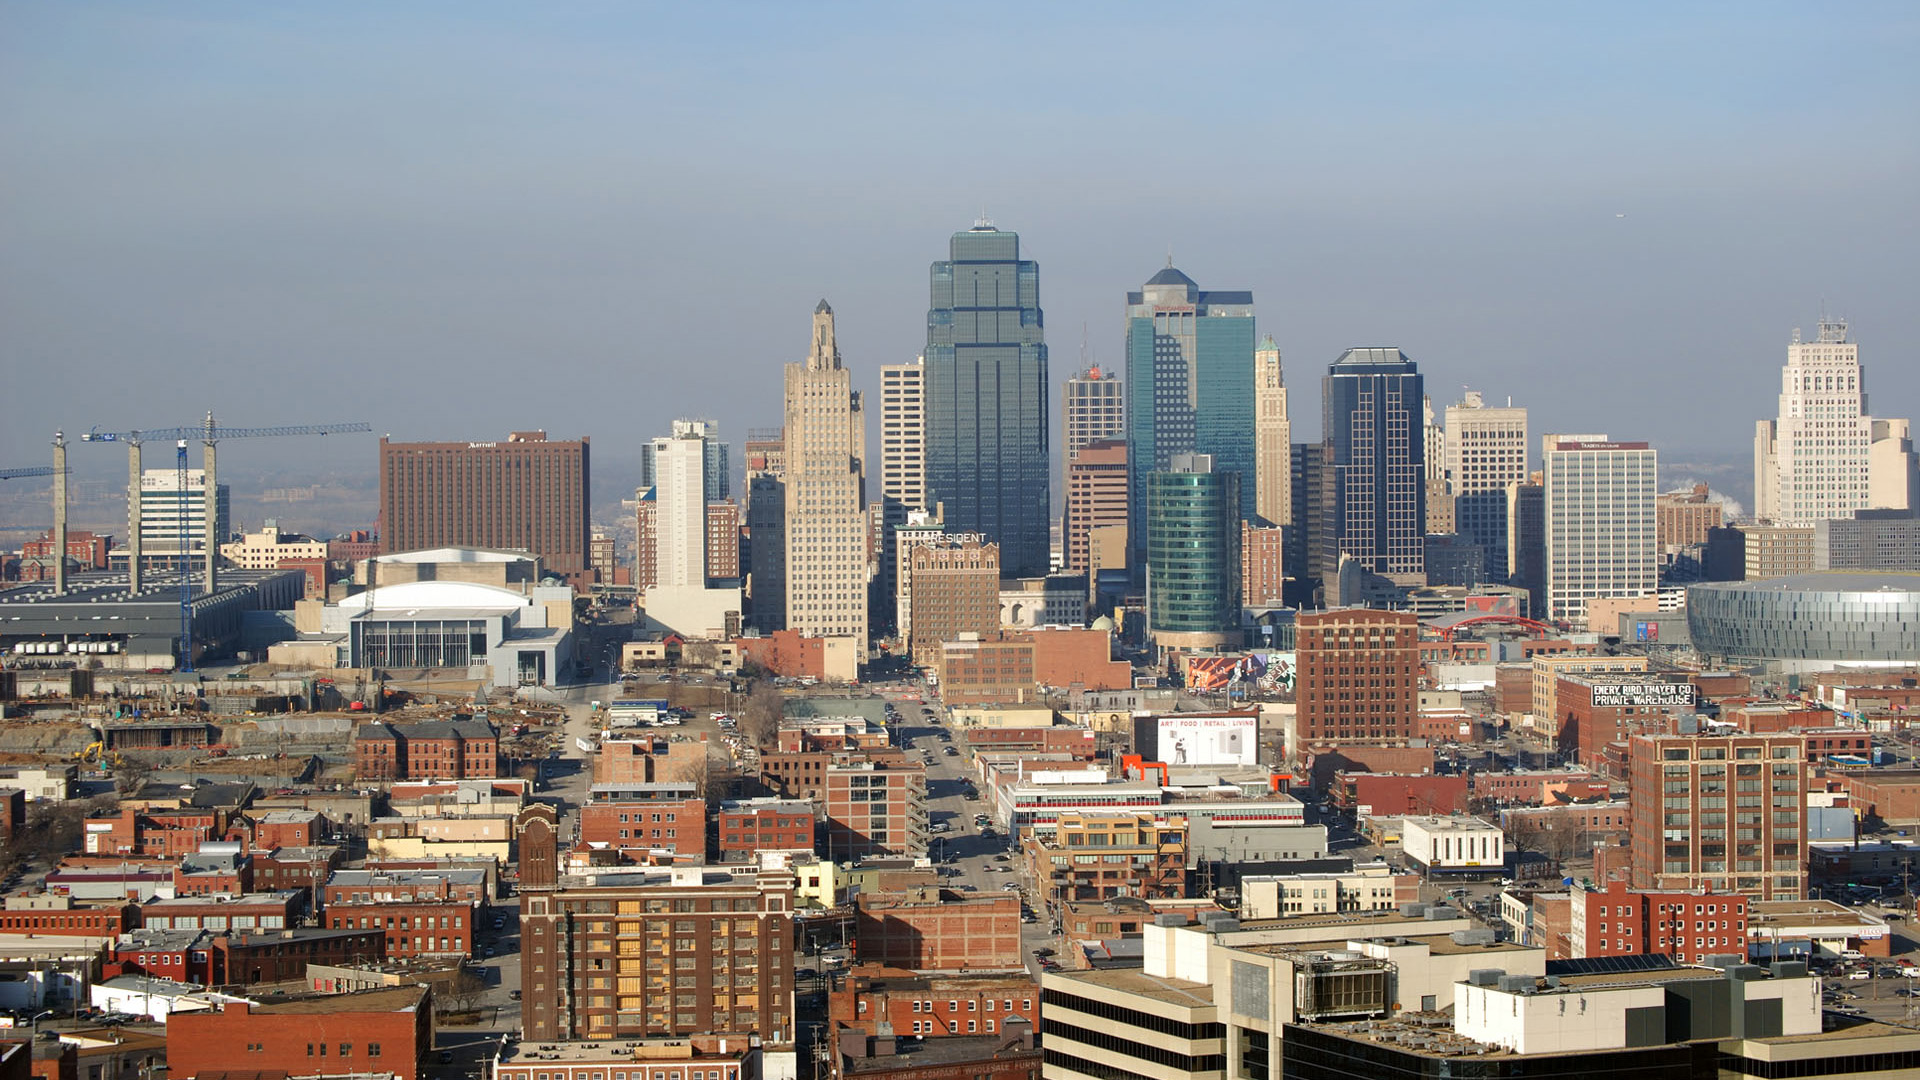 Download More about Kansas City and USA city wallpaper [1920x1080 1920x1080